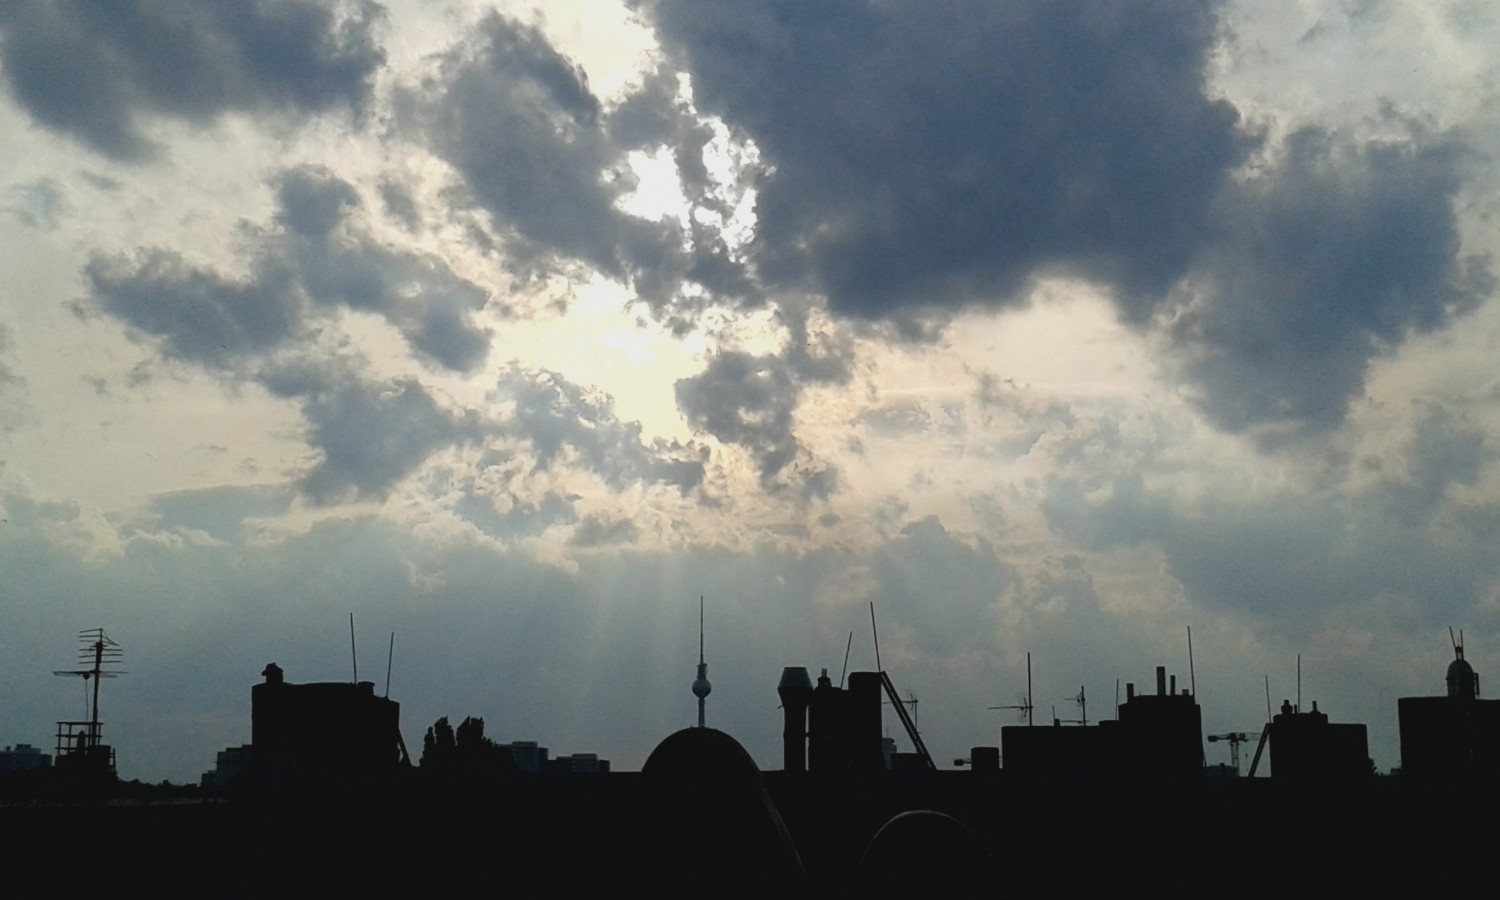 Berlin Rooftops, feat. the Fernsehturm/TV Tower